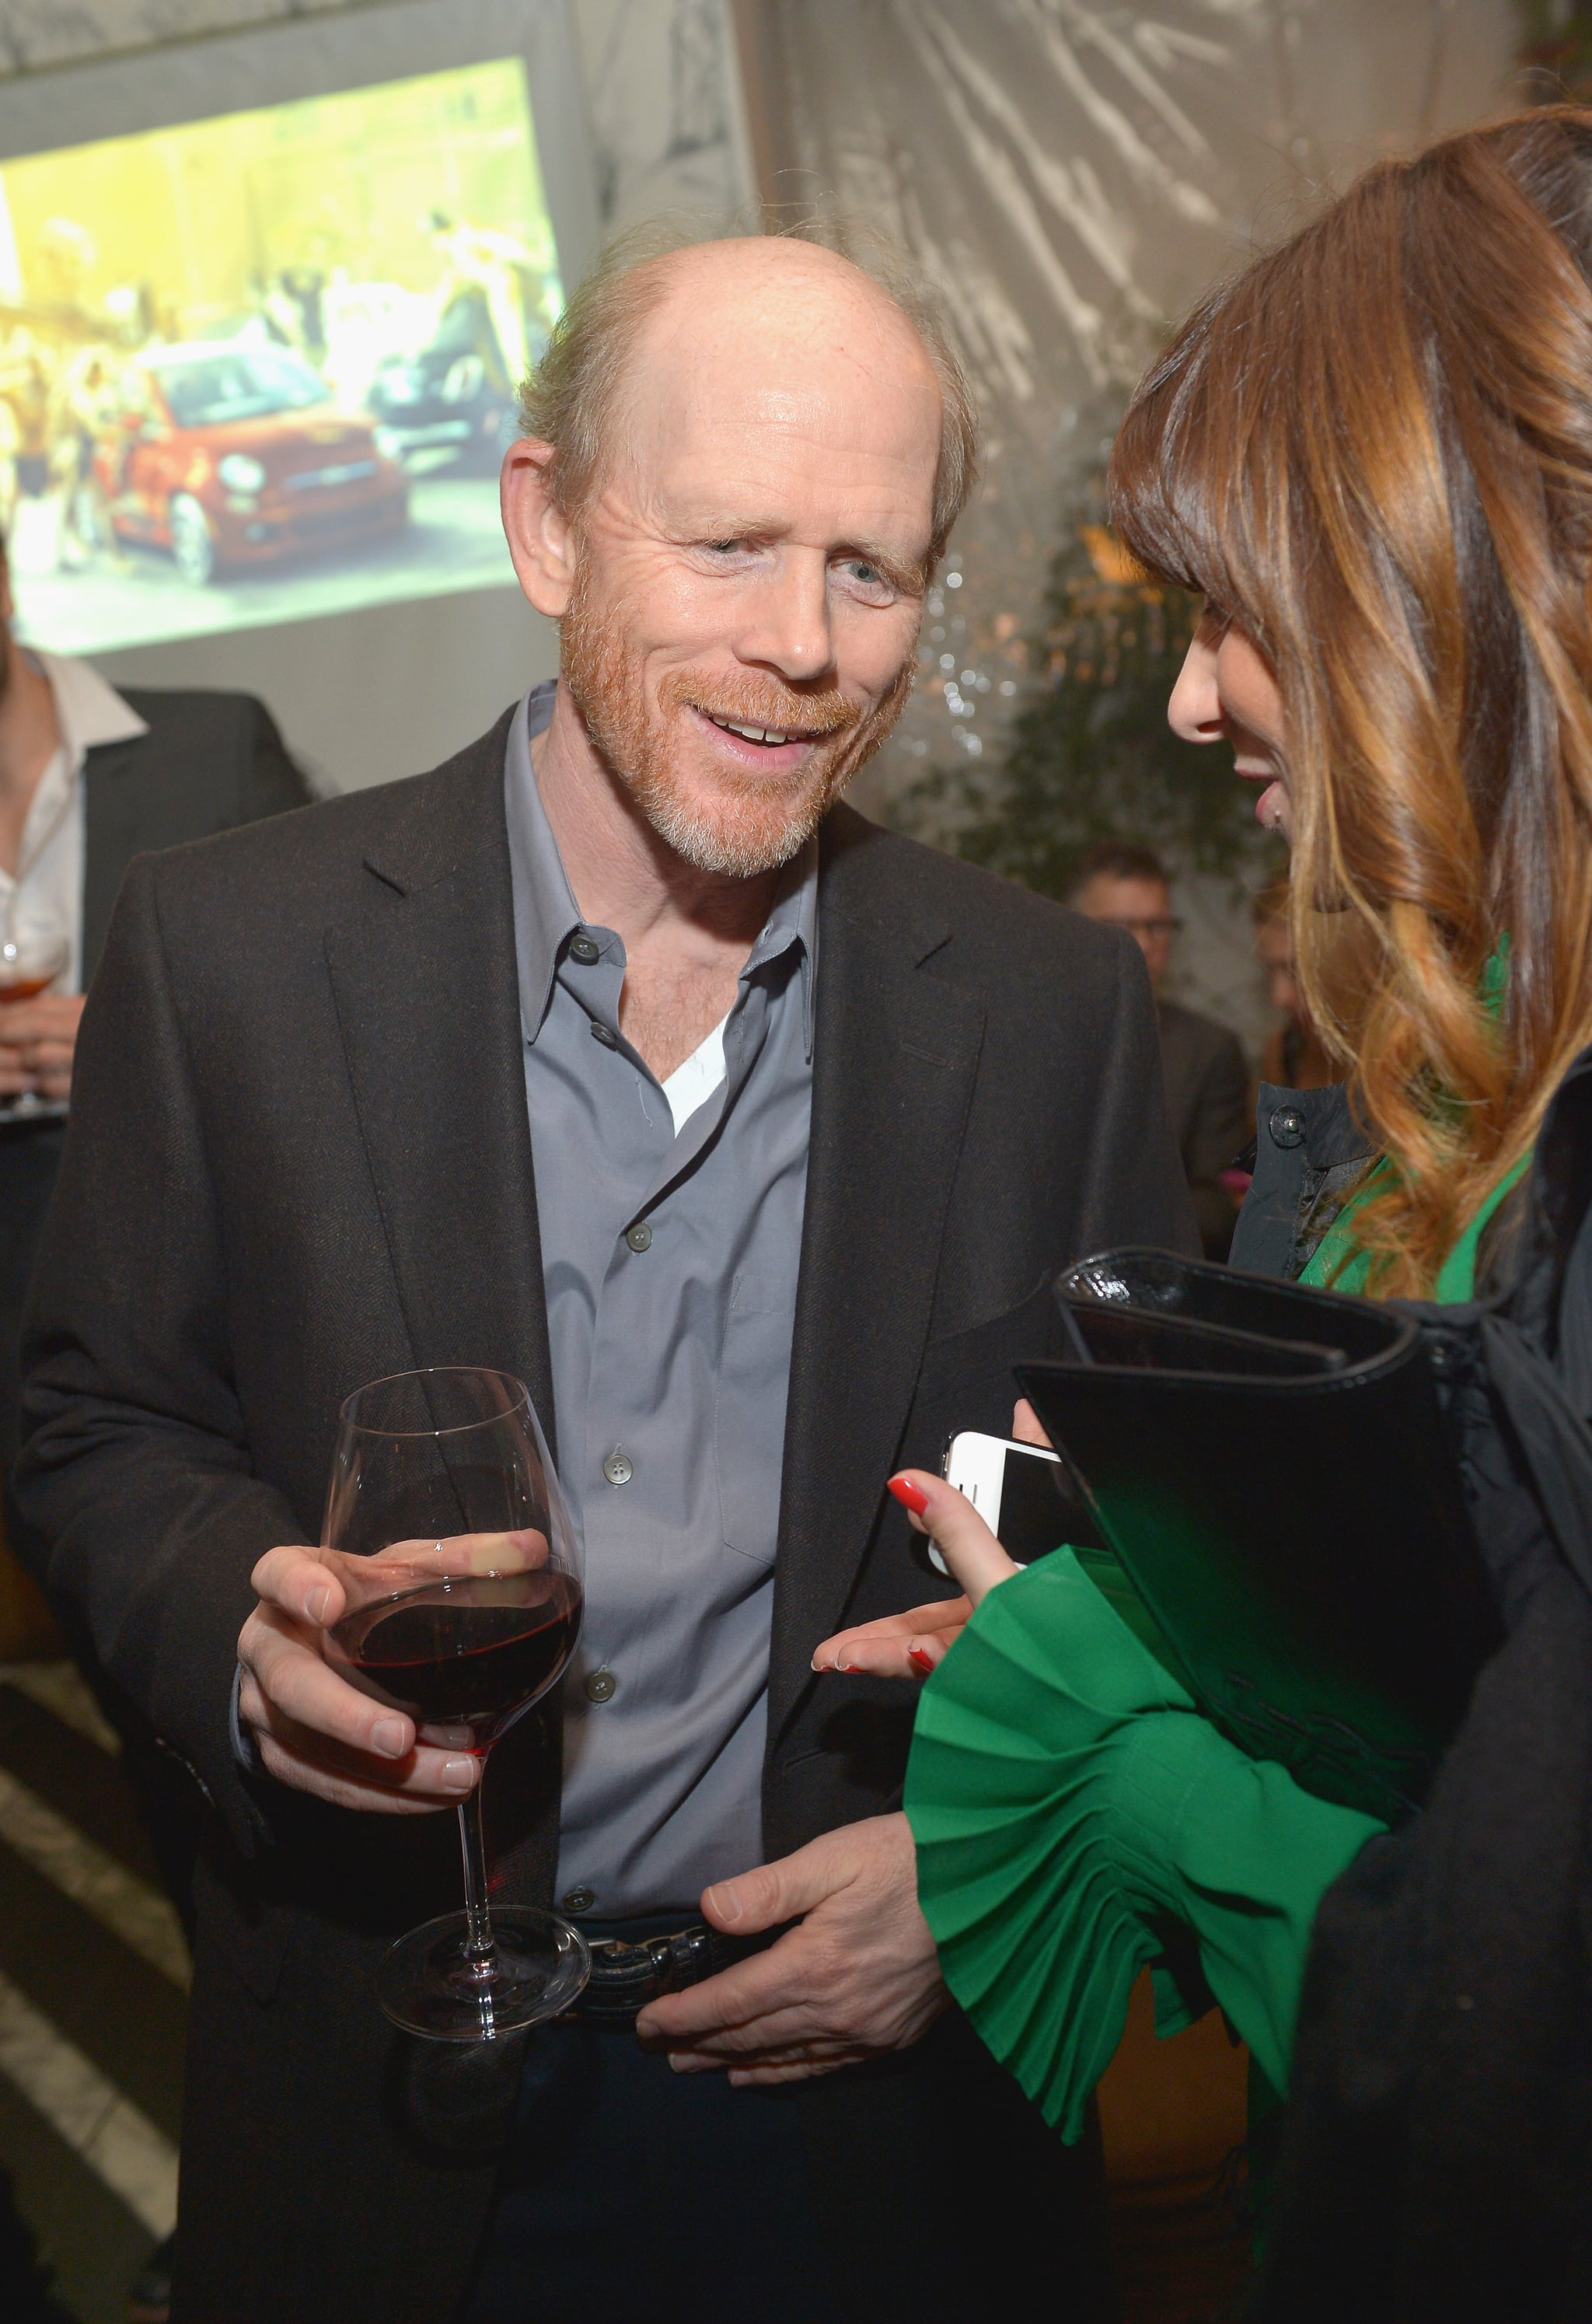 Ron Howard mingled with guests at a Vanity Fair party in LA on Thursday.